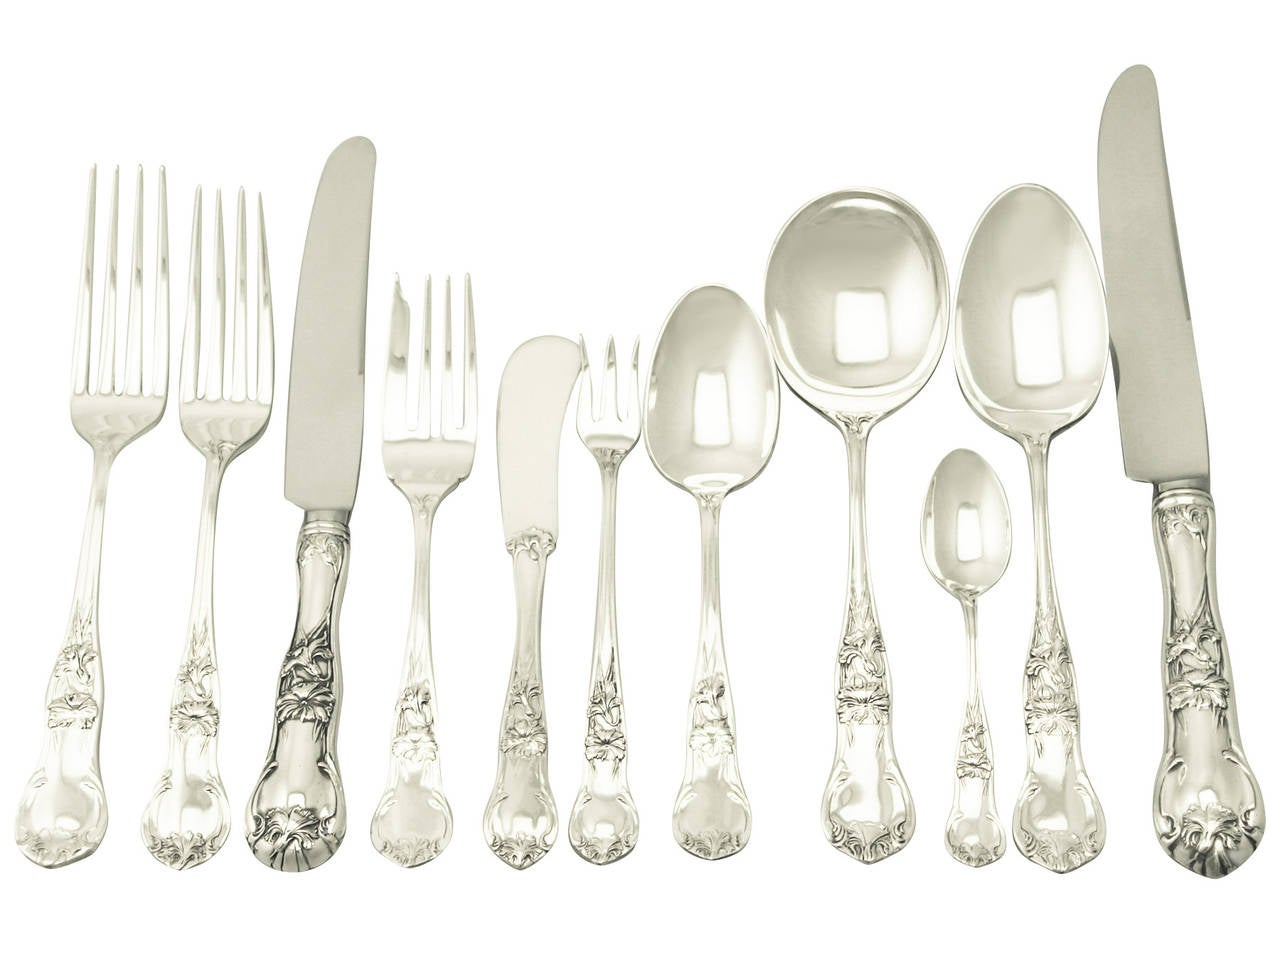 Contemporary Flatware Mexican Sterling Silver Canteen Of Cutlery For 12 Persons